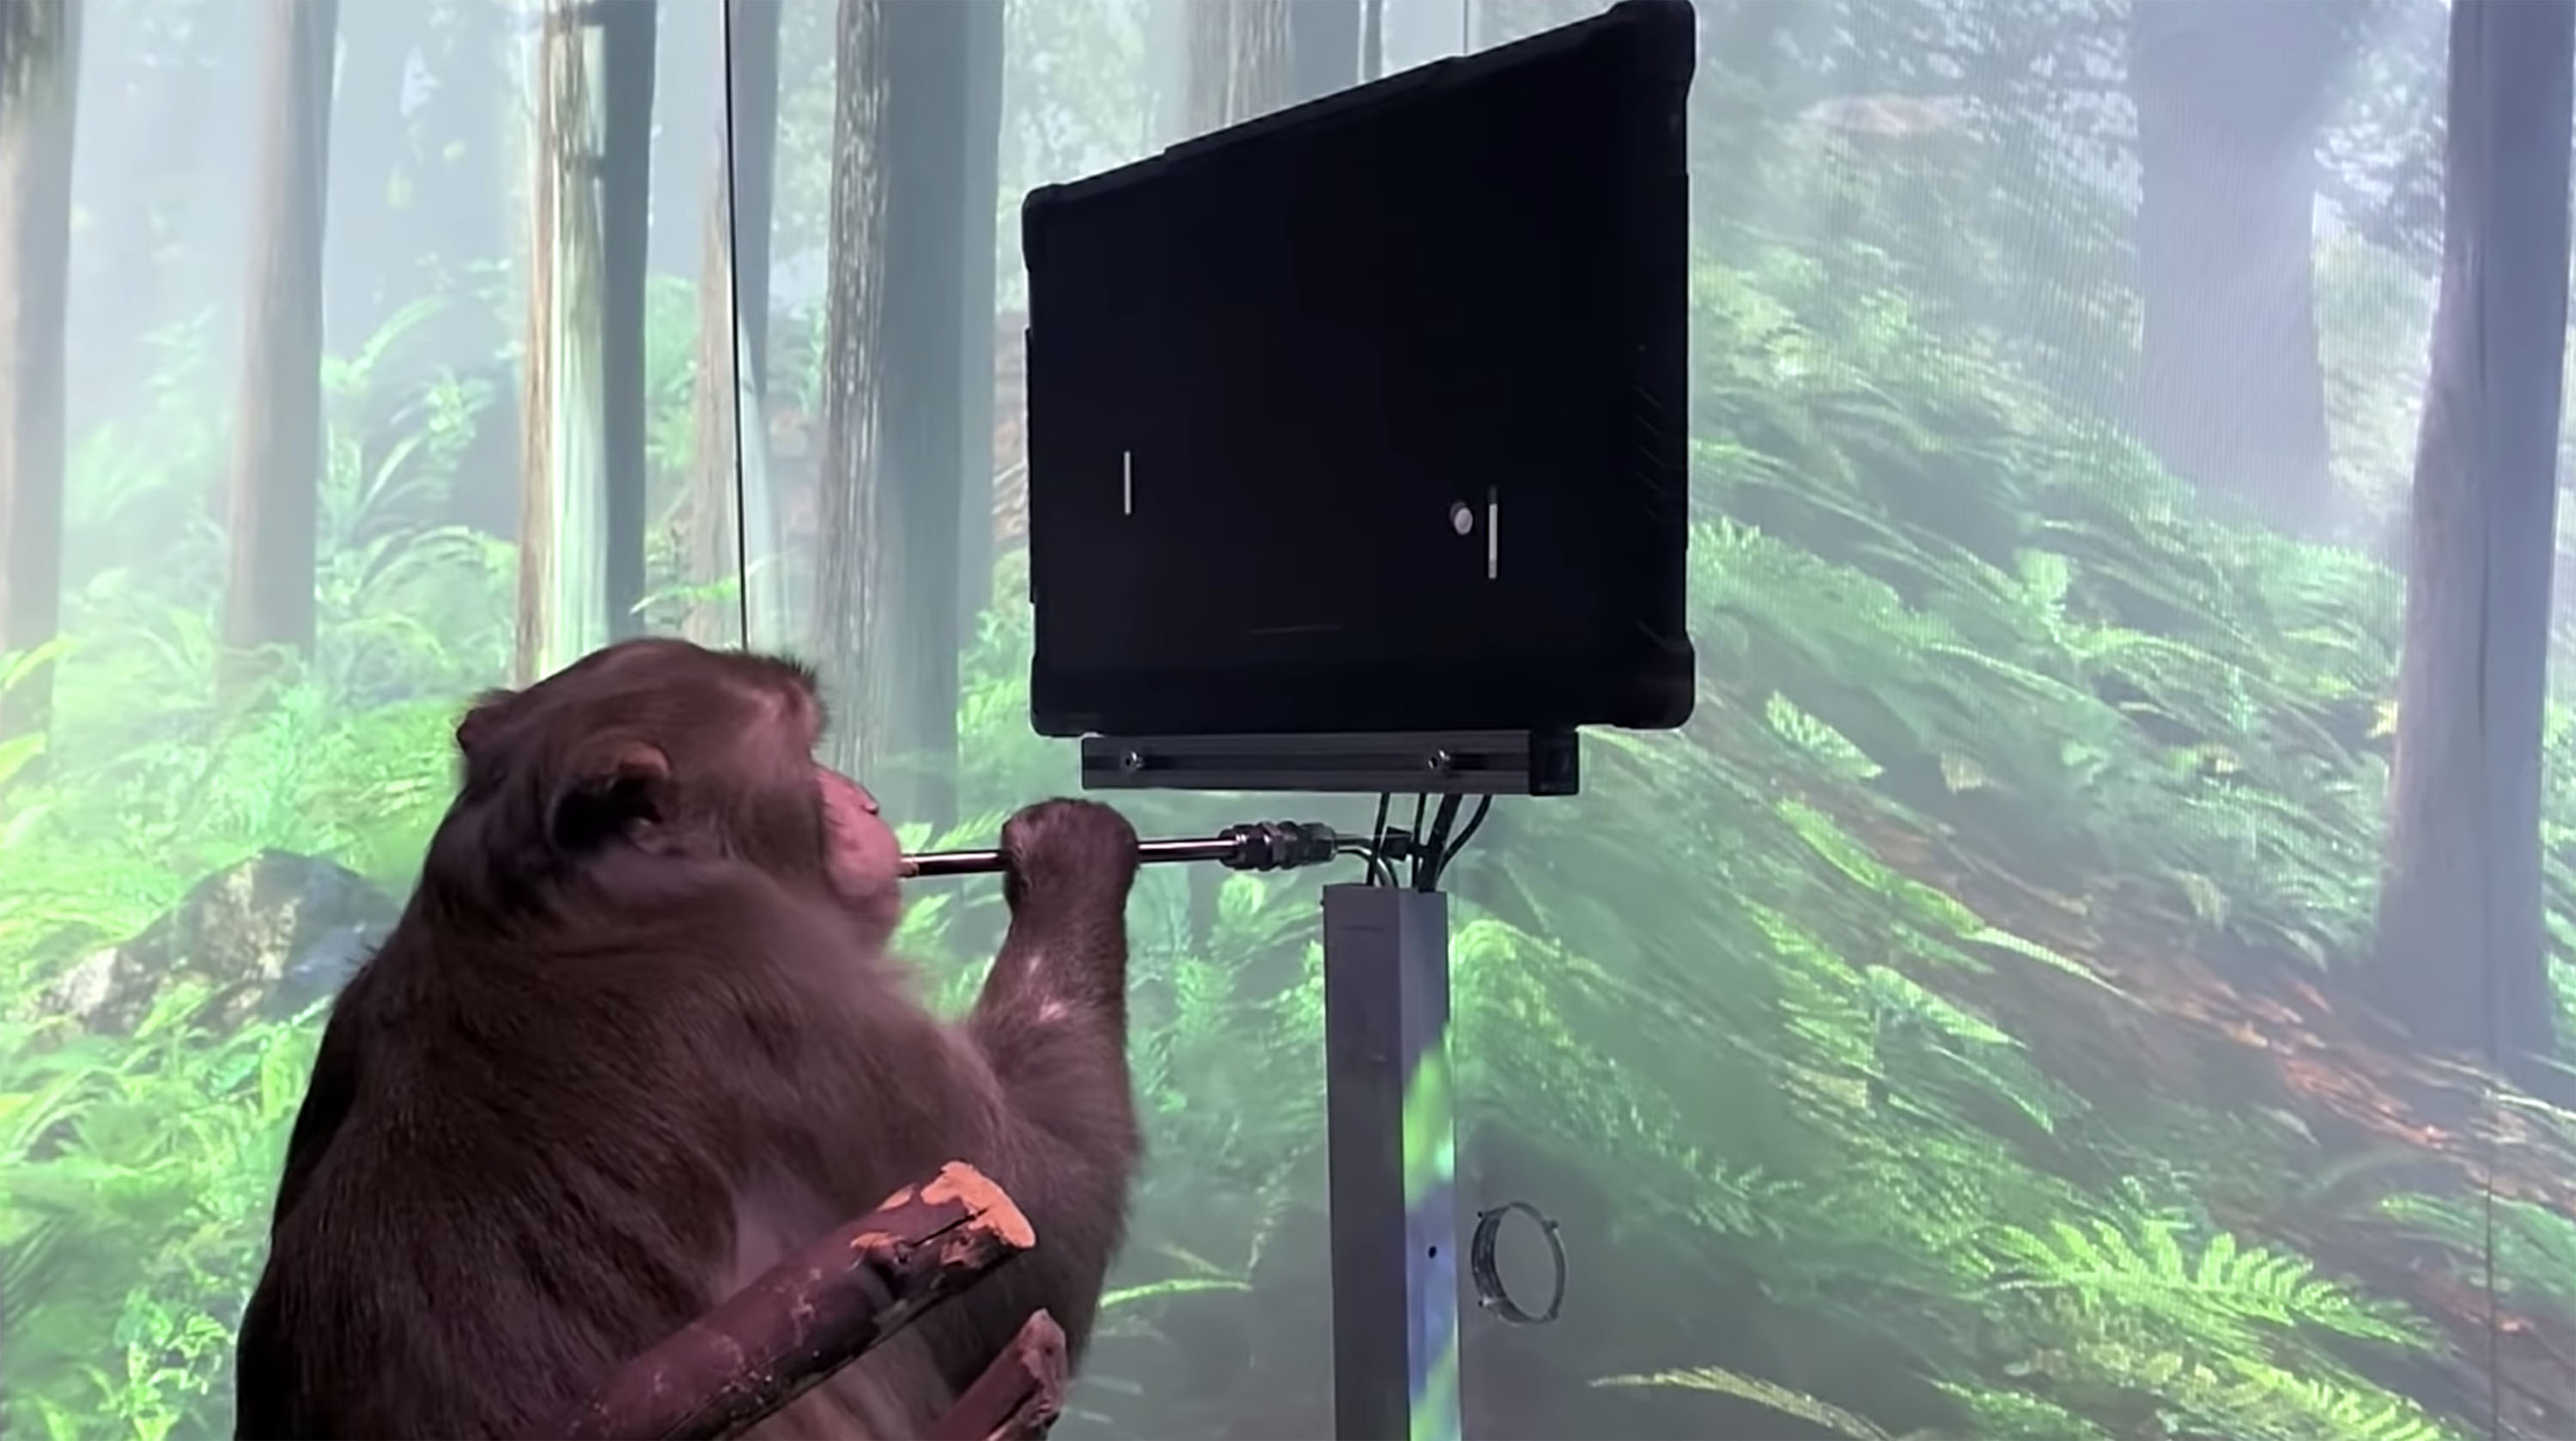 Elon Musk's Neuralink claims monkeys can play Pong using just their minds